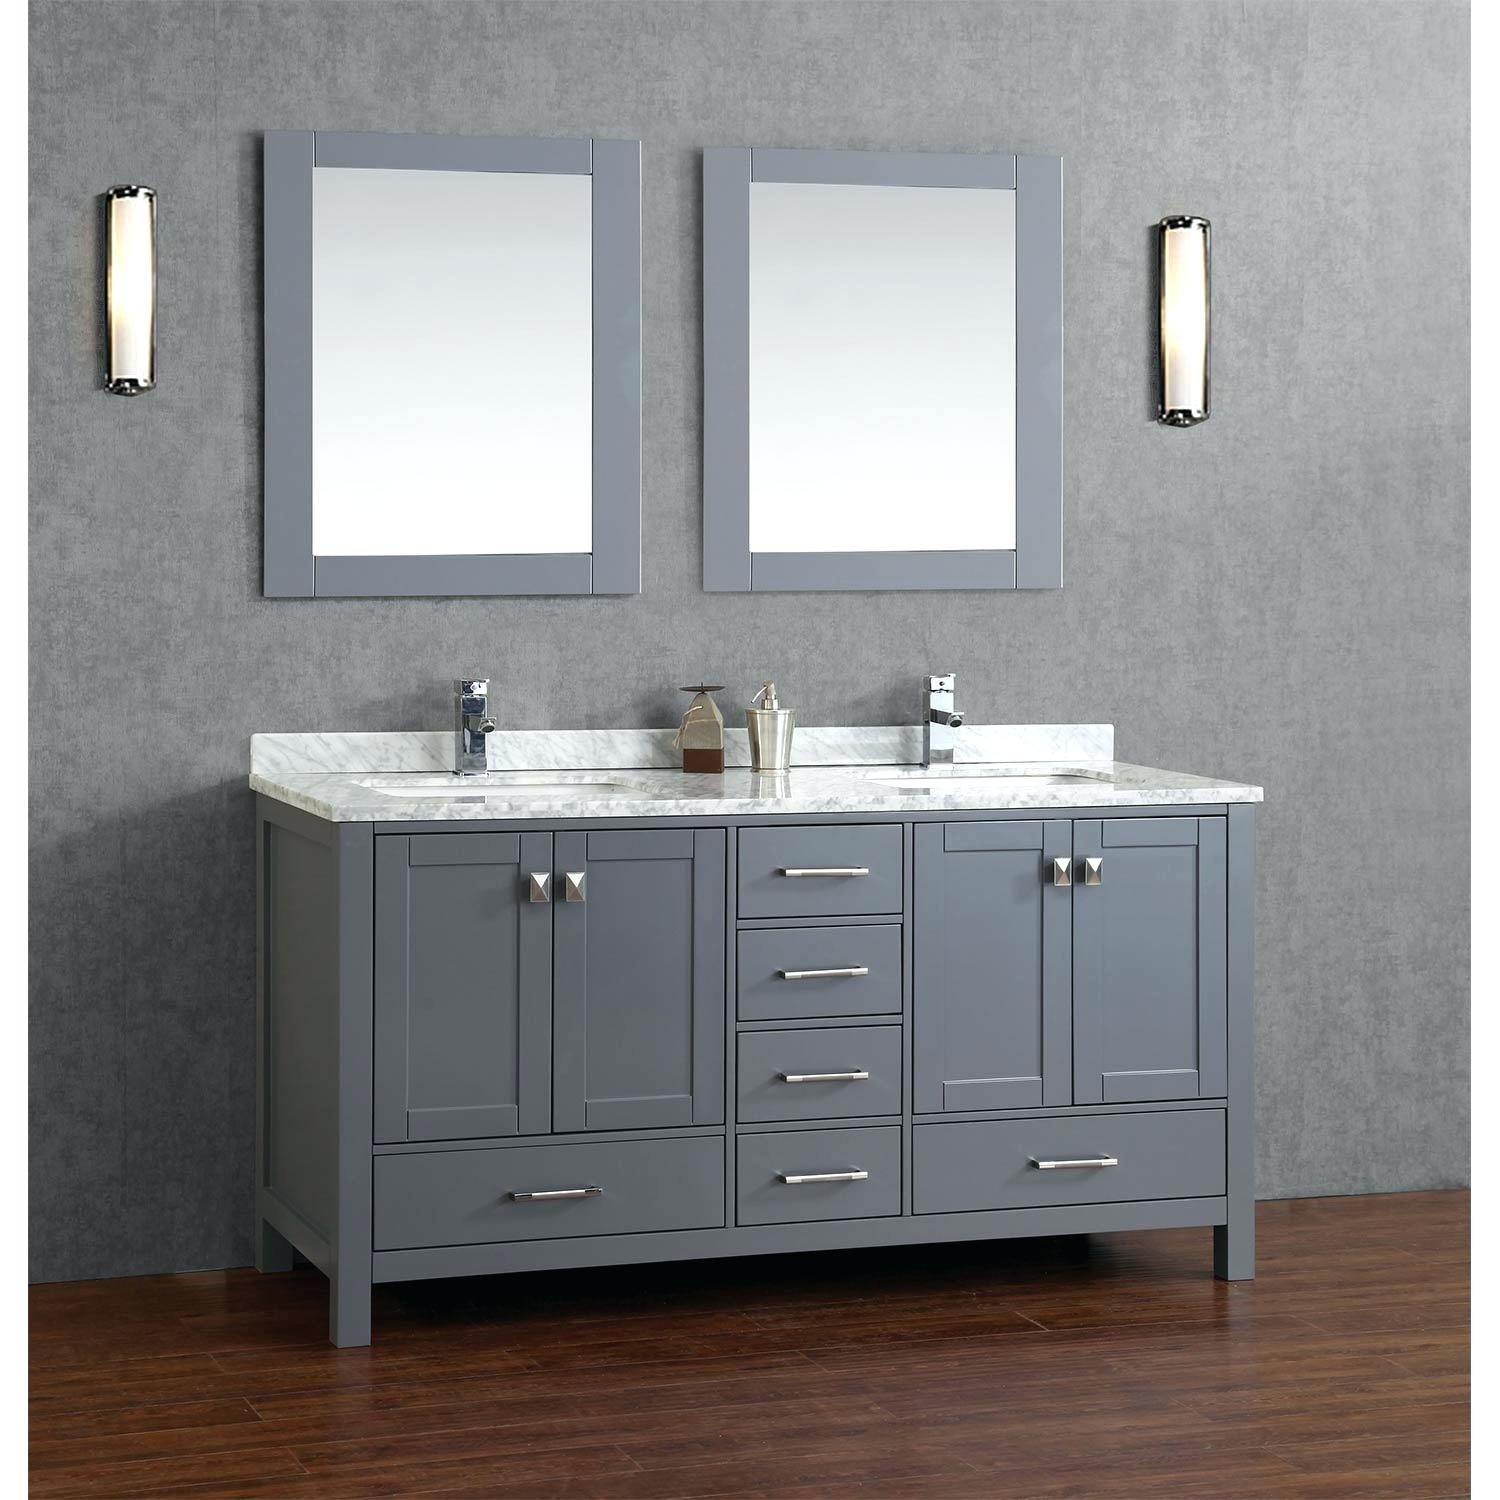 Solid Wood Bathroom Vanities Home Depot